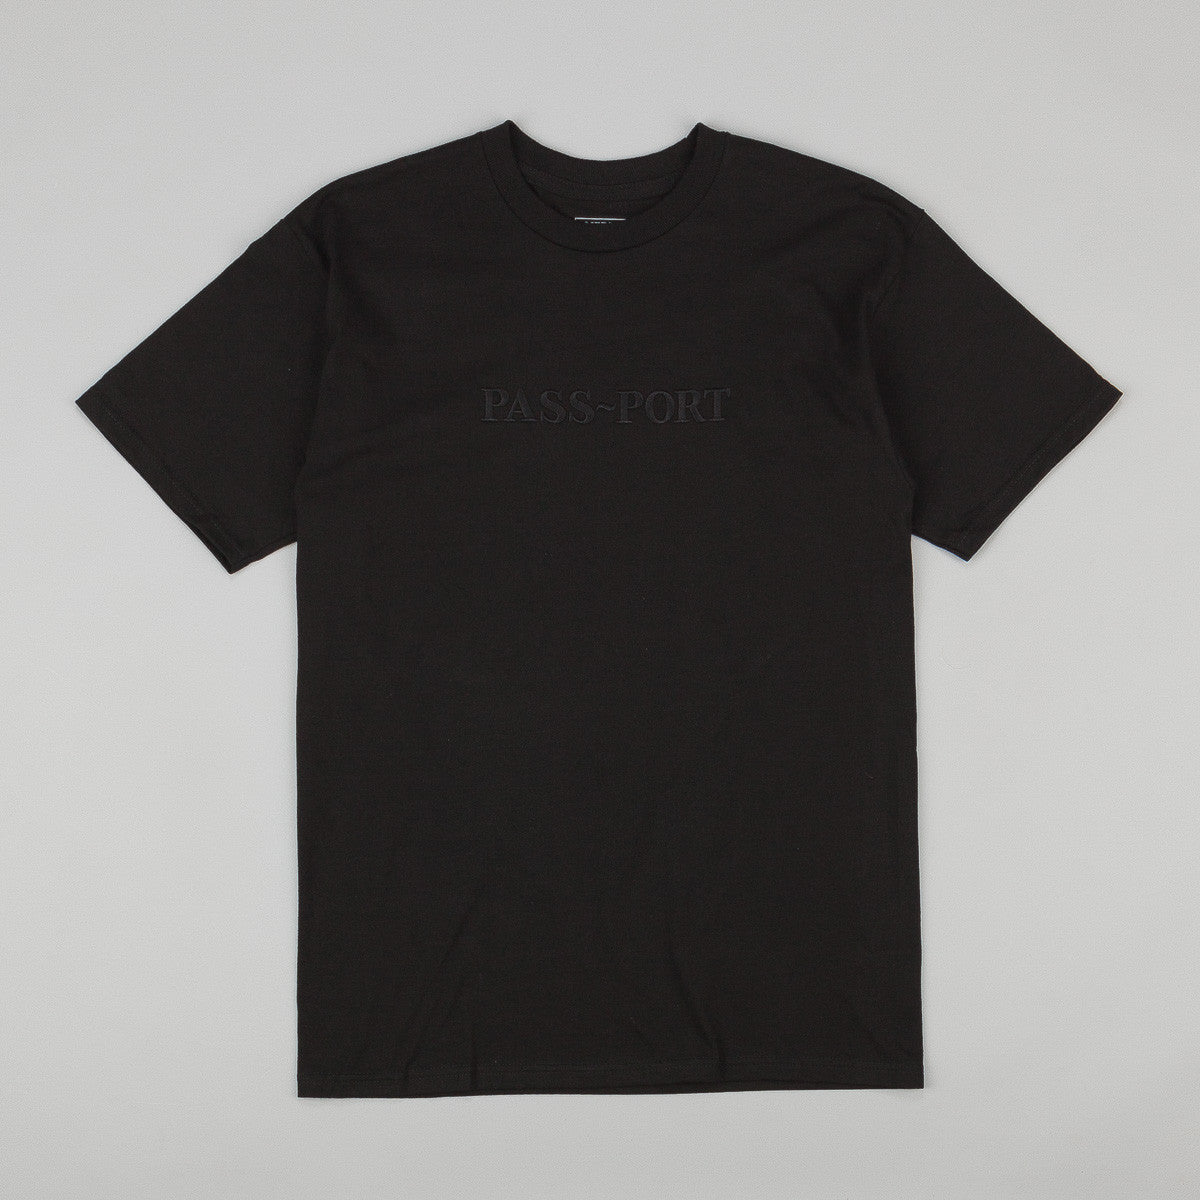 Pass Port Official Embroidery T-Shirt